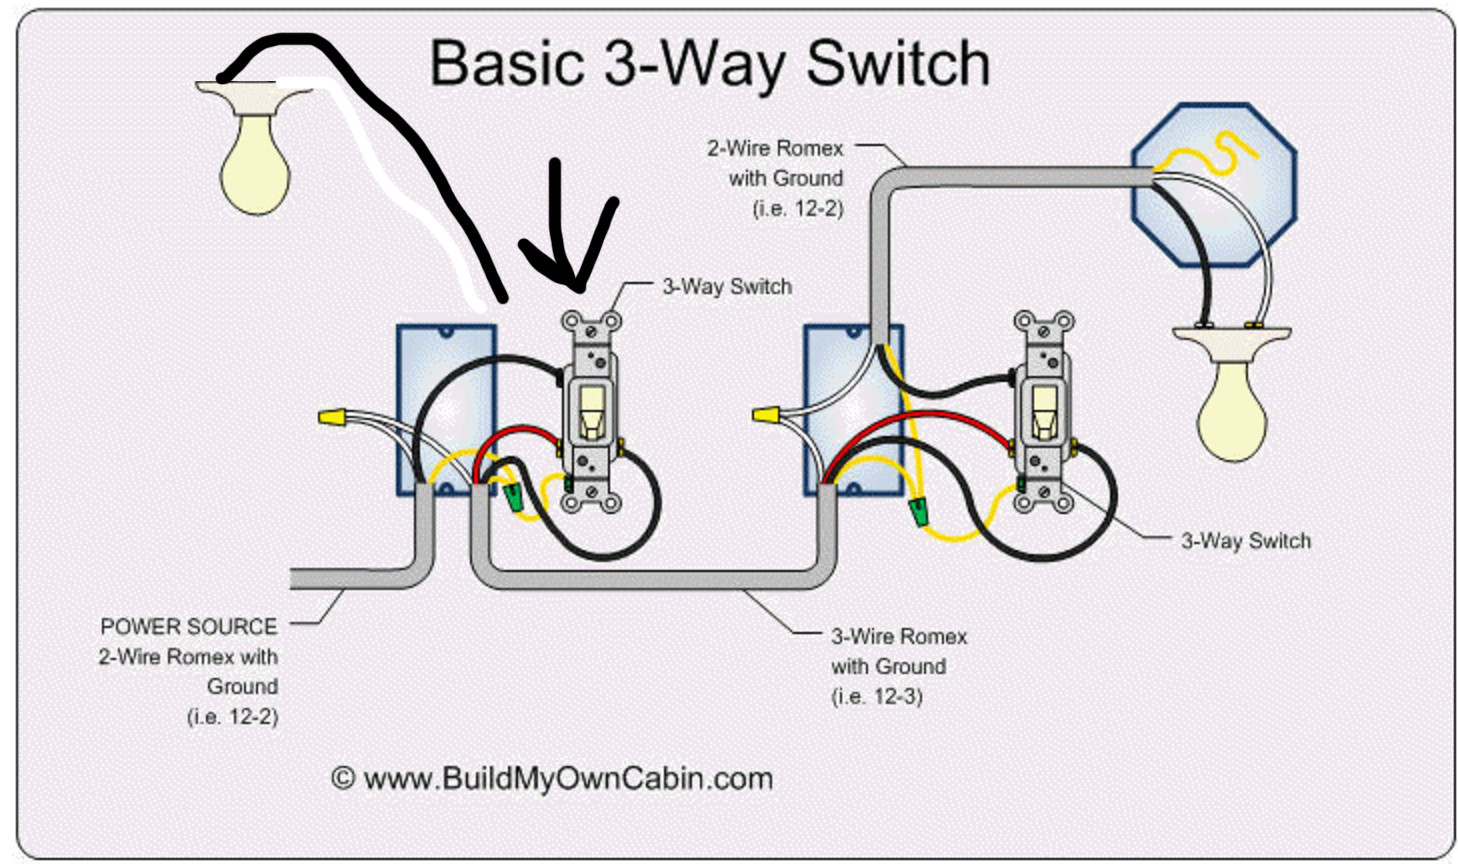 light wiring diagram 2 way switch ibanez rg370dx lighting additional to a 3